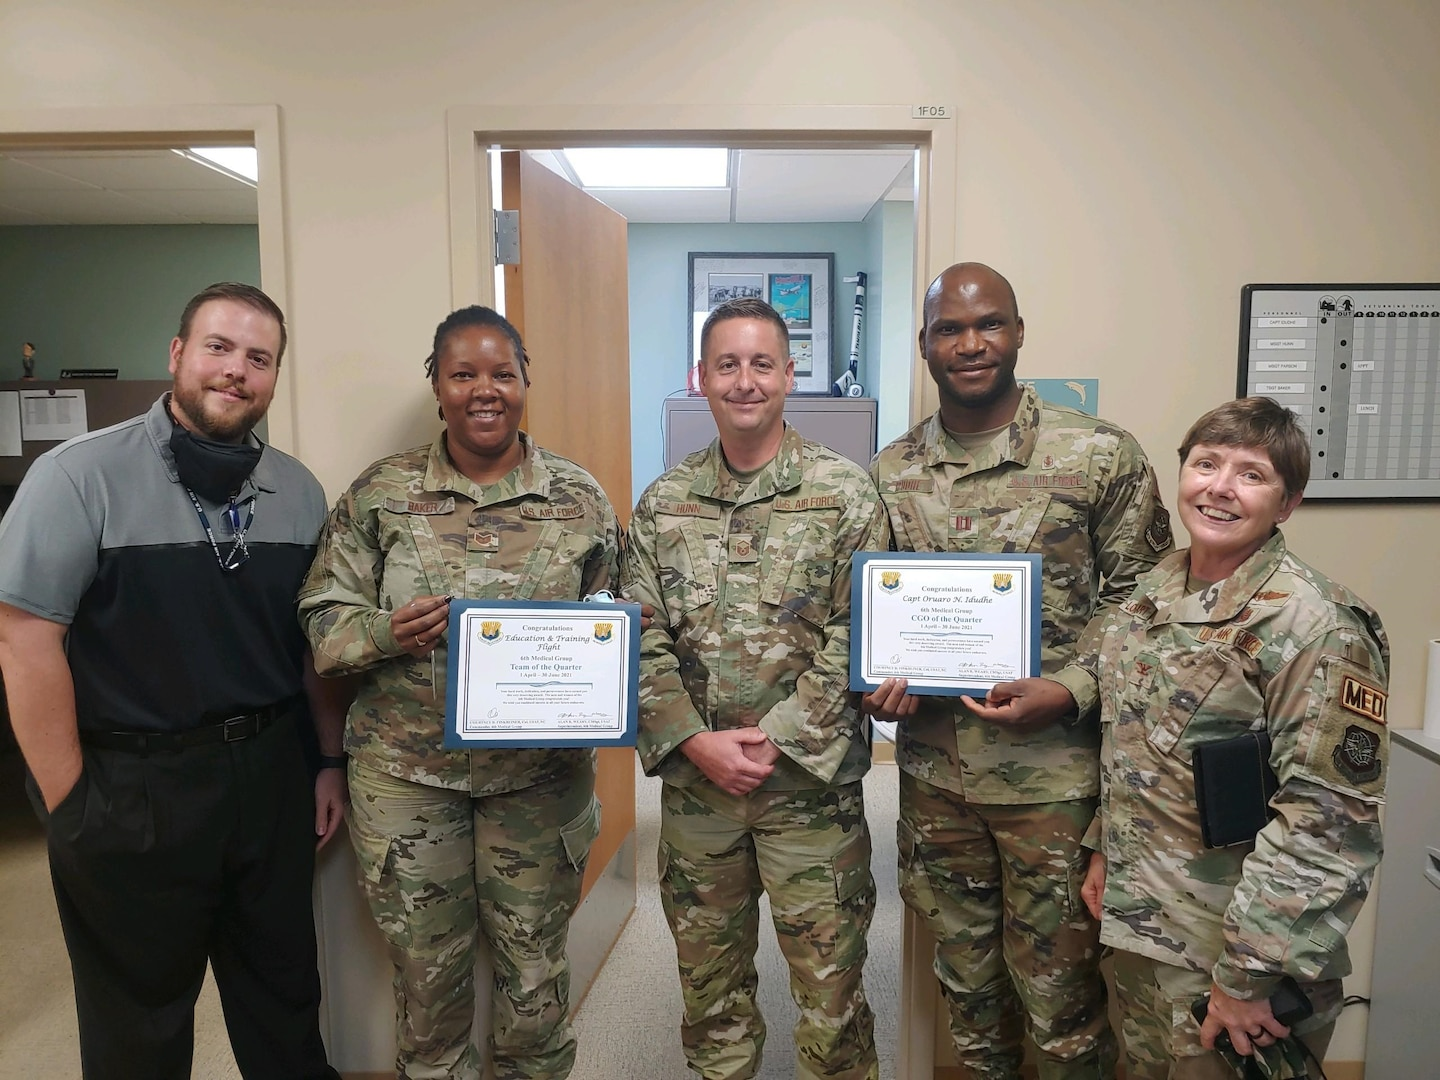 Personnel assigned to the 6th Medical Group's Education and Training Flight, MacDill Air Force Base, Florida, pose for a group photo Aug. 3, 2021. The Education and Training Flight was presented the 6th MDG's 'Team of the Quarter' for April 1 – June 30, 2021. The team pioneered a Department of Defense transition from self-aid buddy care to tactical combat casualty care and certified 12 instructors across the command. From left, Dustin Sieff, Tech Sgt. Kierra Baker, Master Sgt. Matthew Hunn, Capt. Oruaro Idudhe and Col. Cheryl Lockhart (Not pictured: James Norbech and Richard Cook). (Courtesy photo)